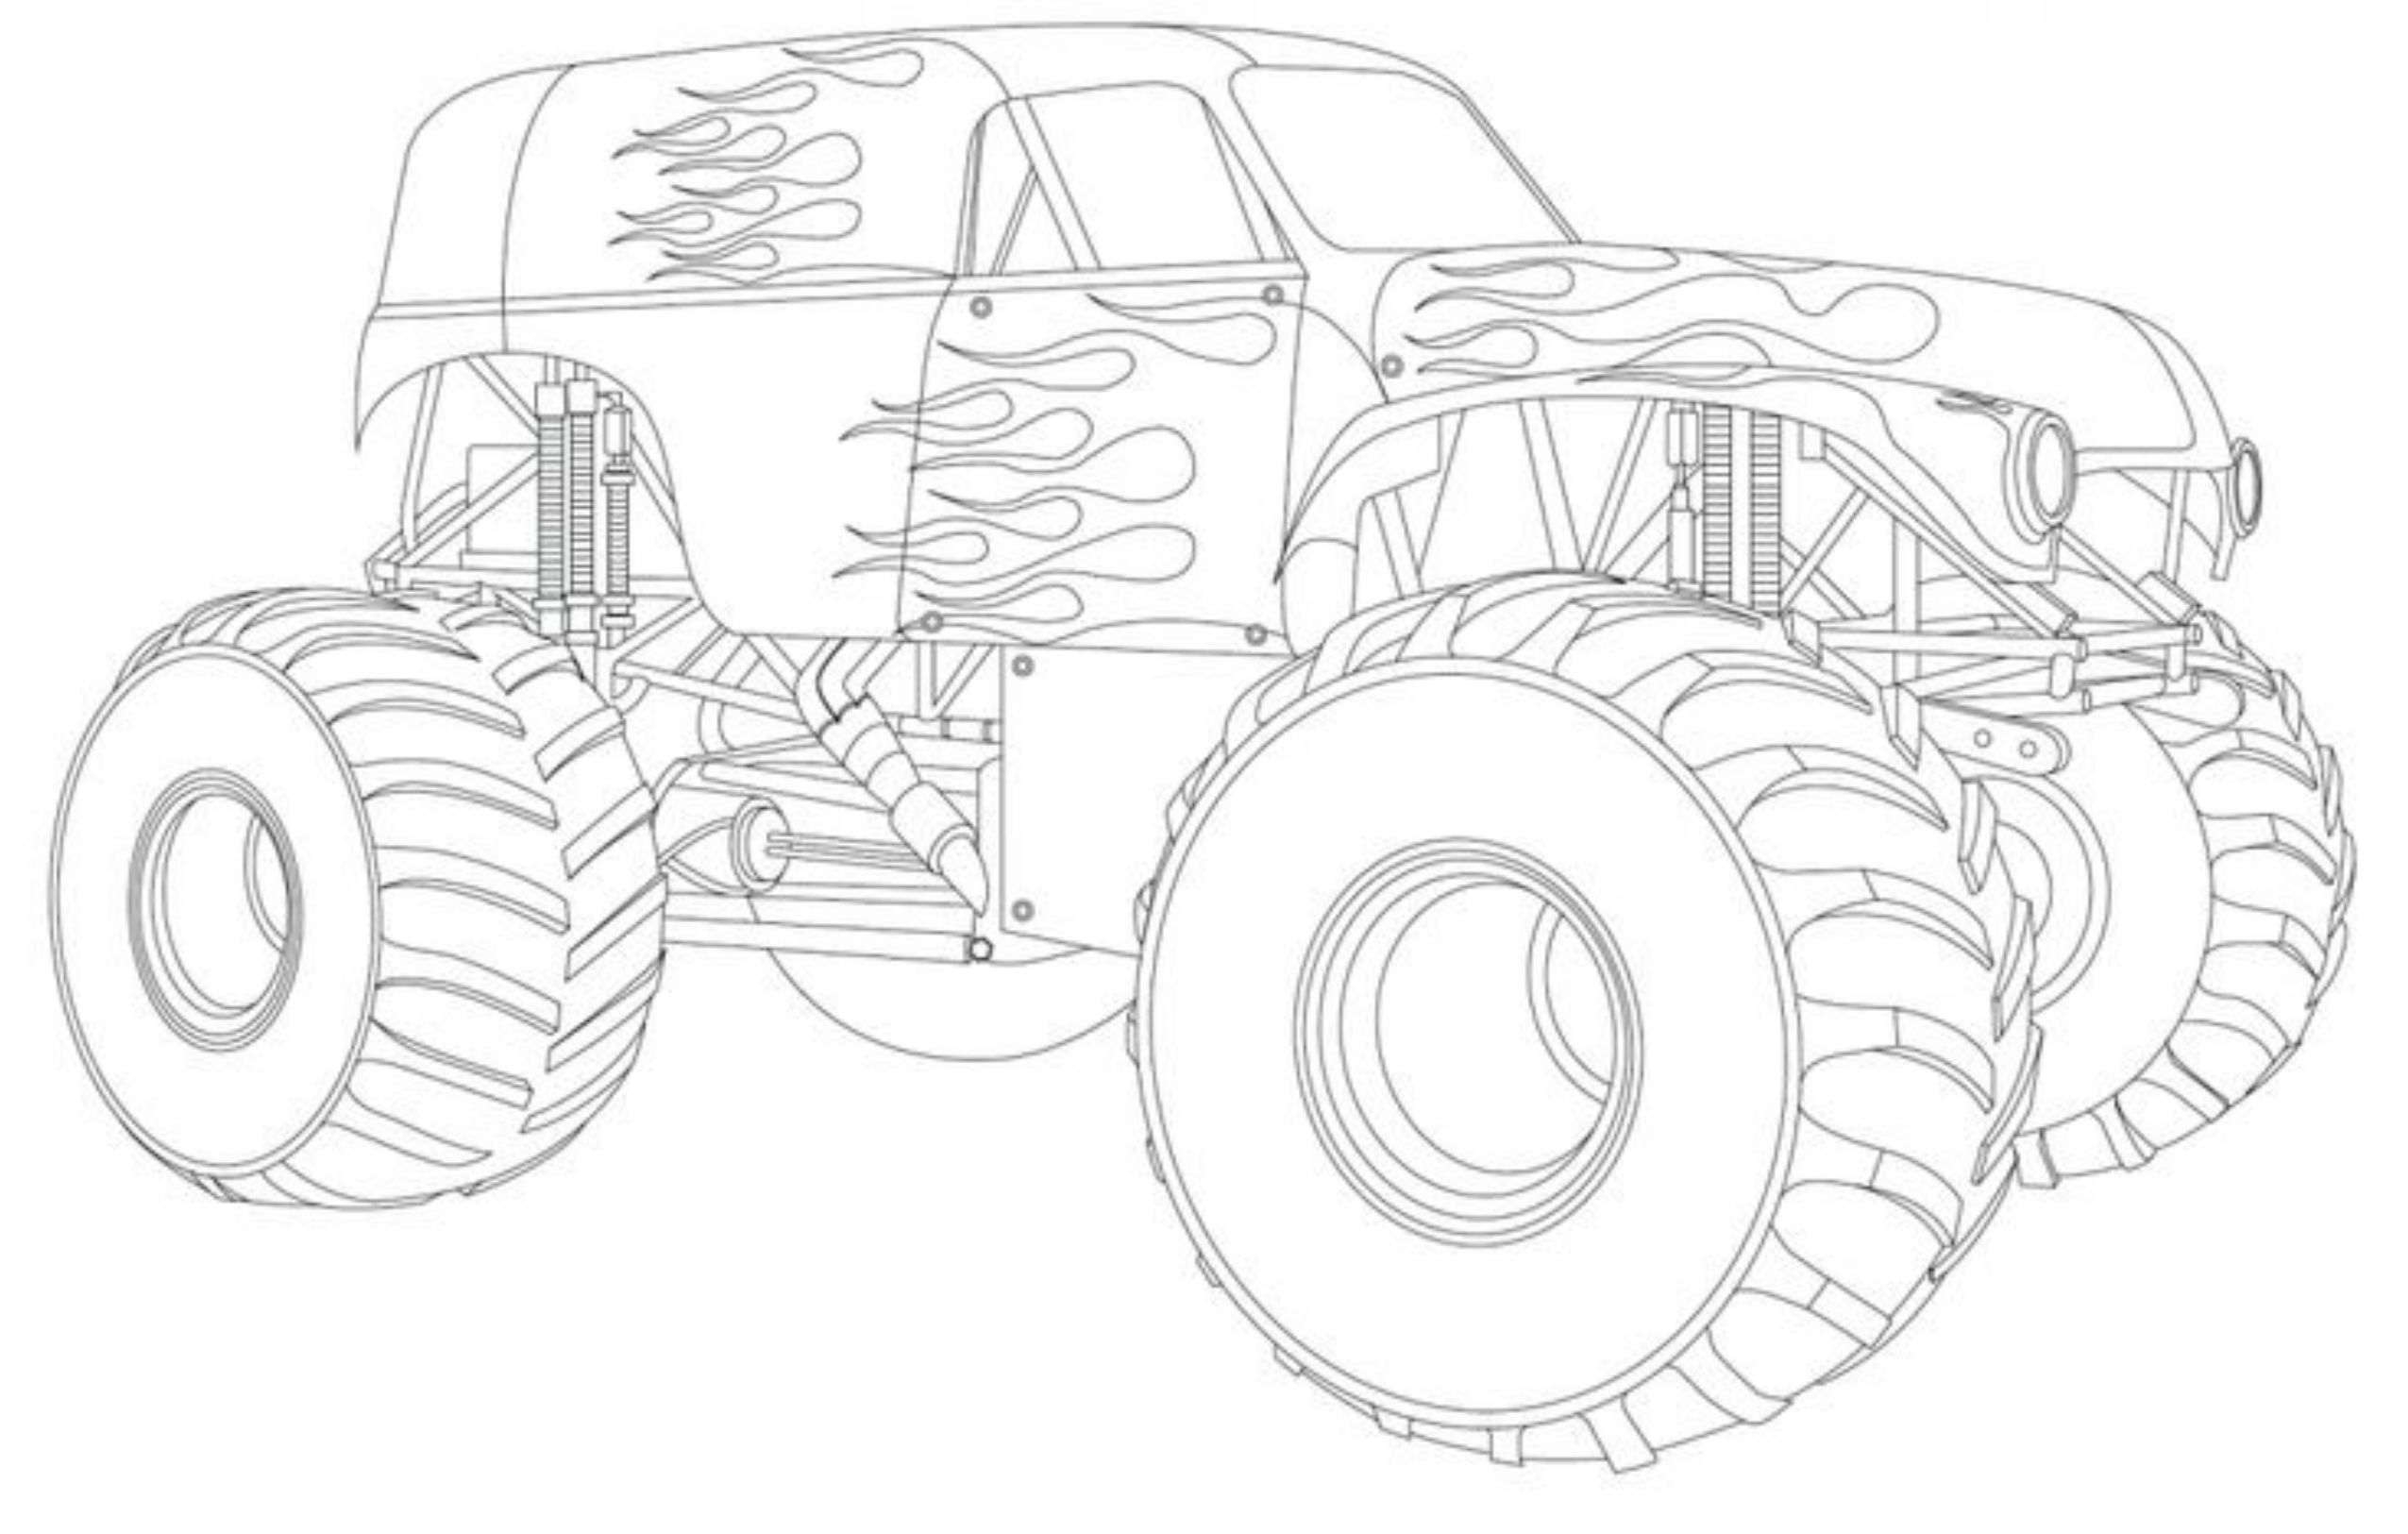 Adult Coloring Pages Trucks Drawing Monster Truck Coloring Pages With Kids Best Apps For Kids